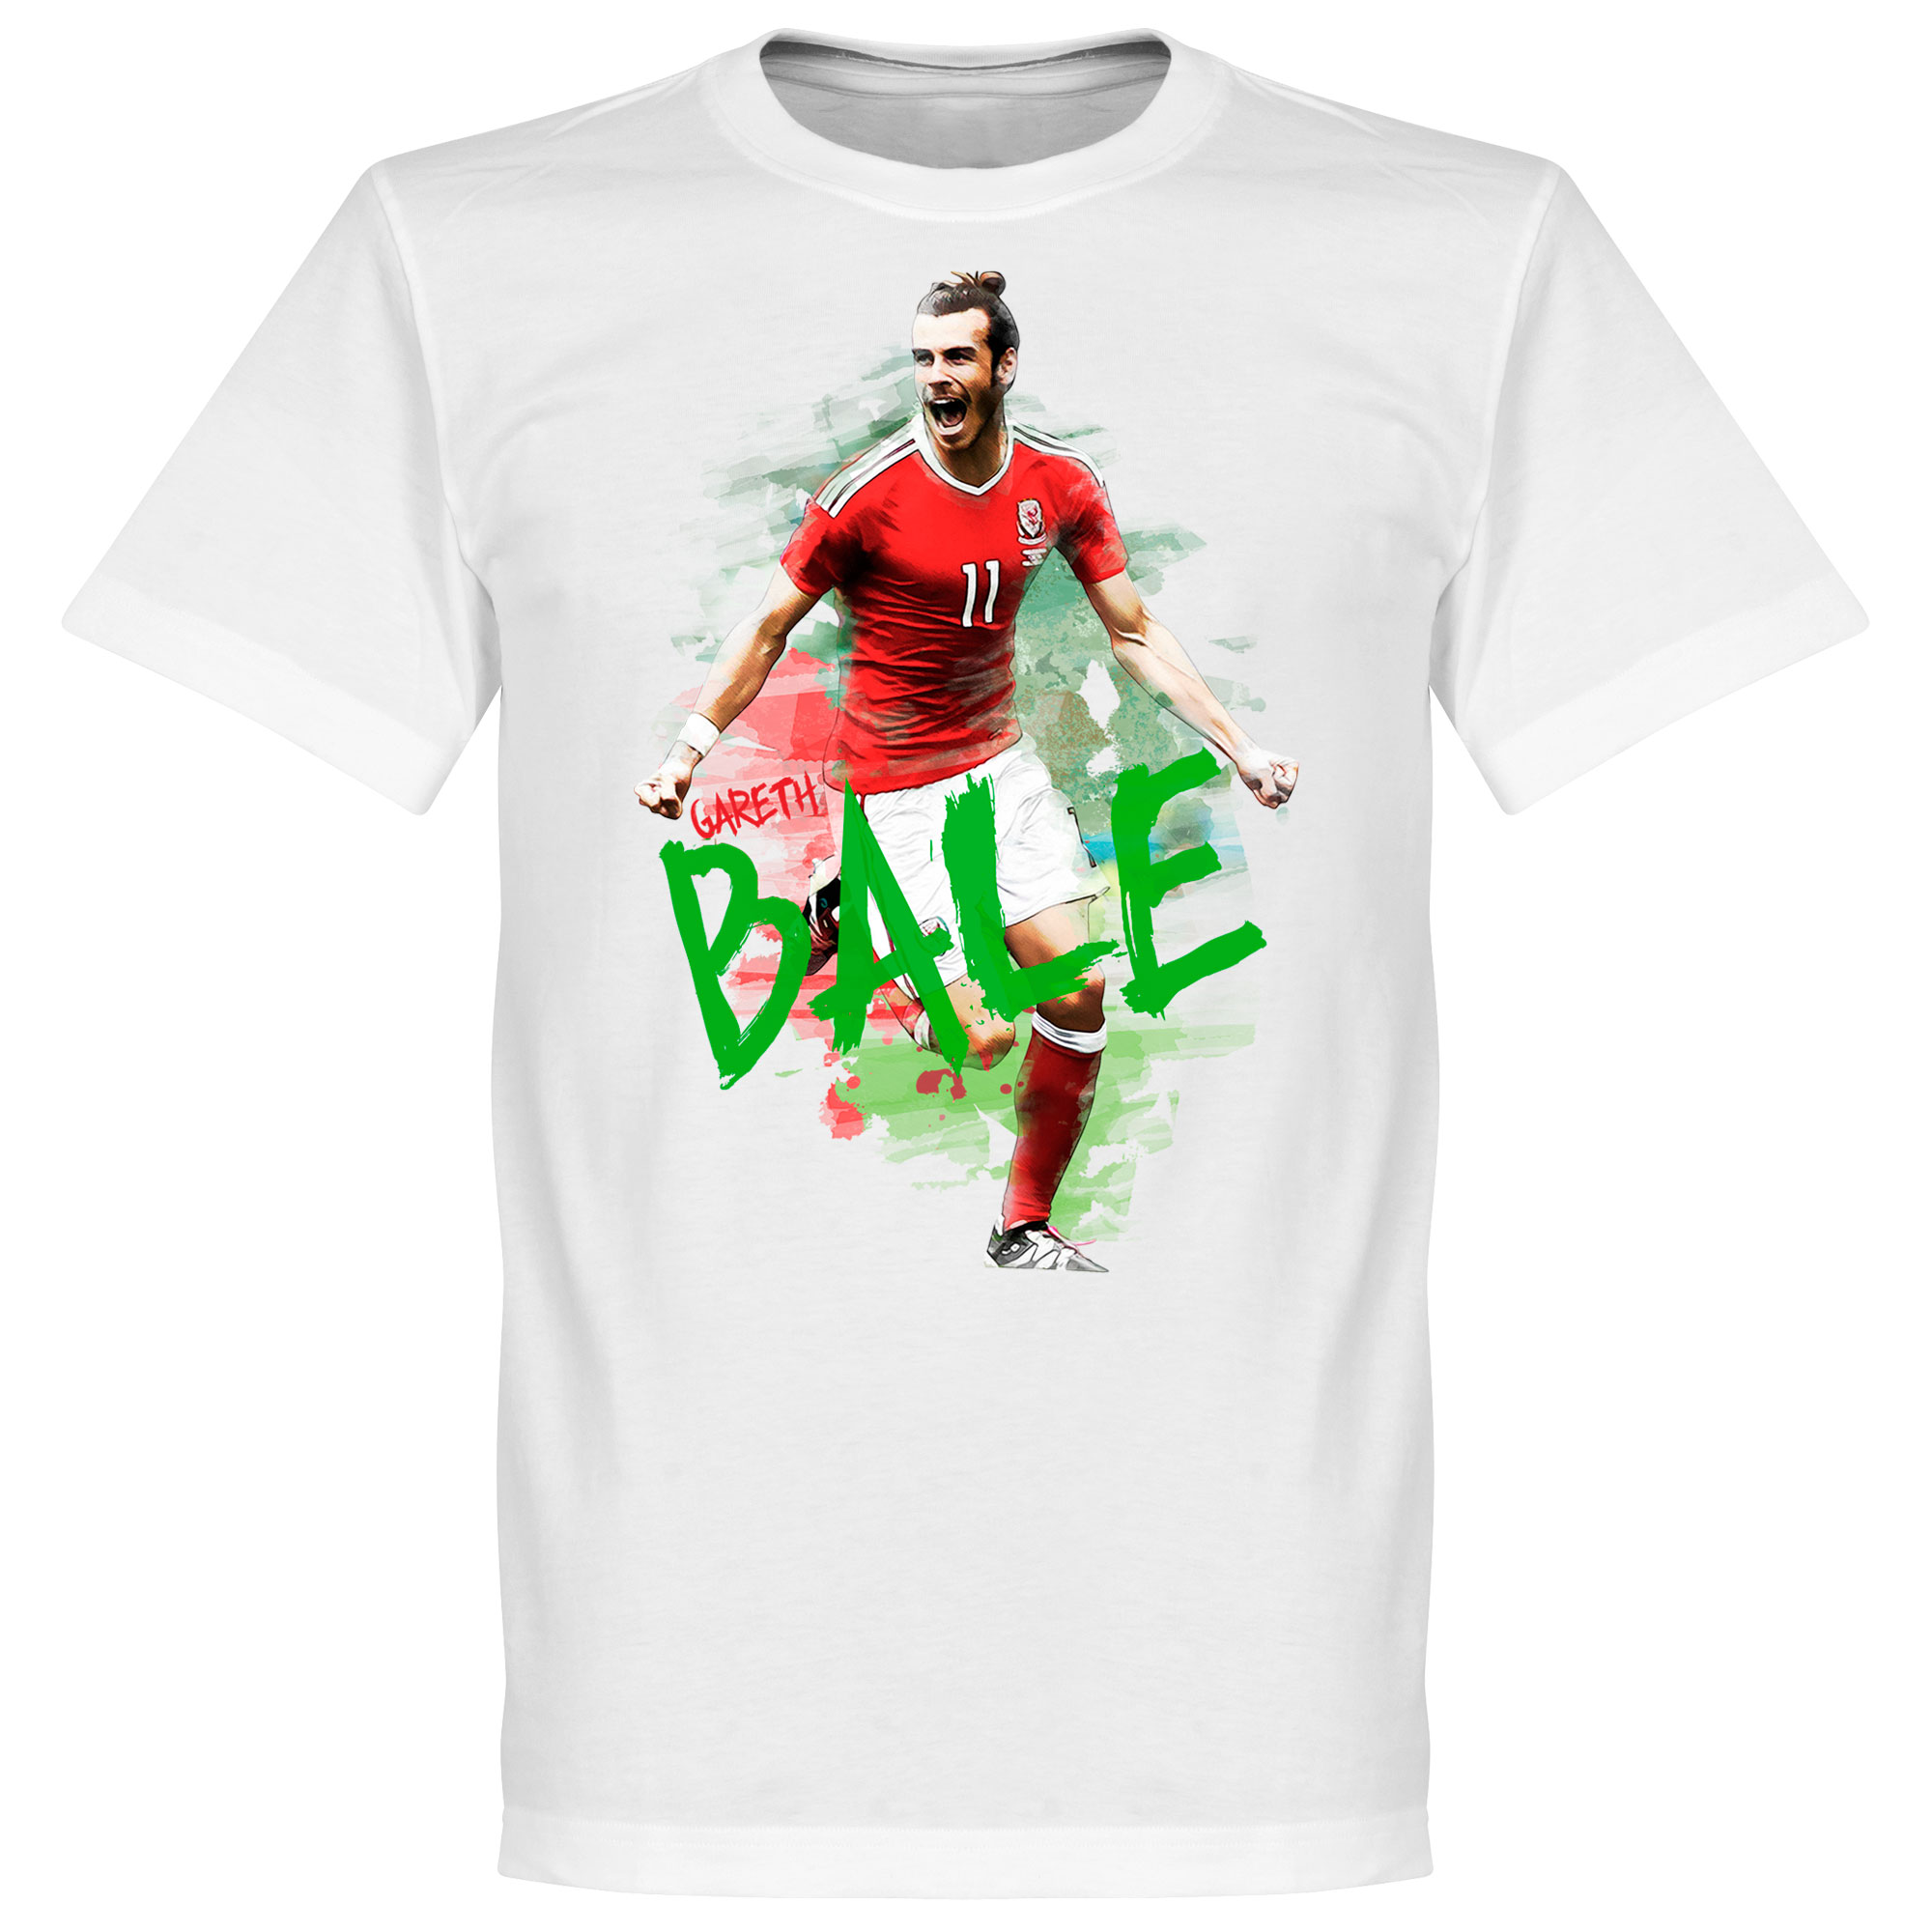 Bale Motion Tee - White - XL